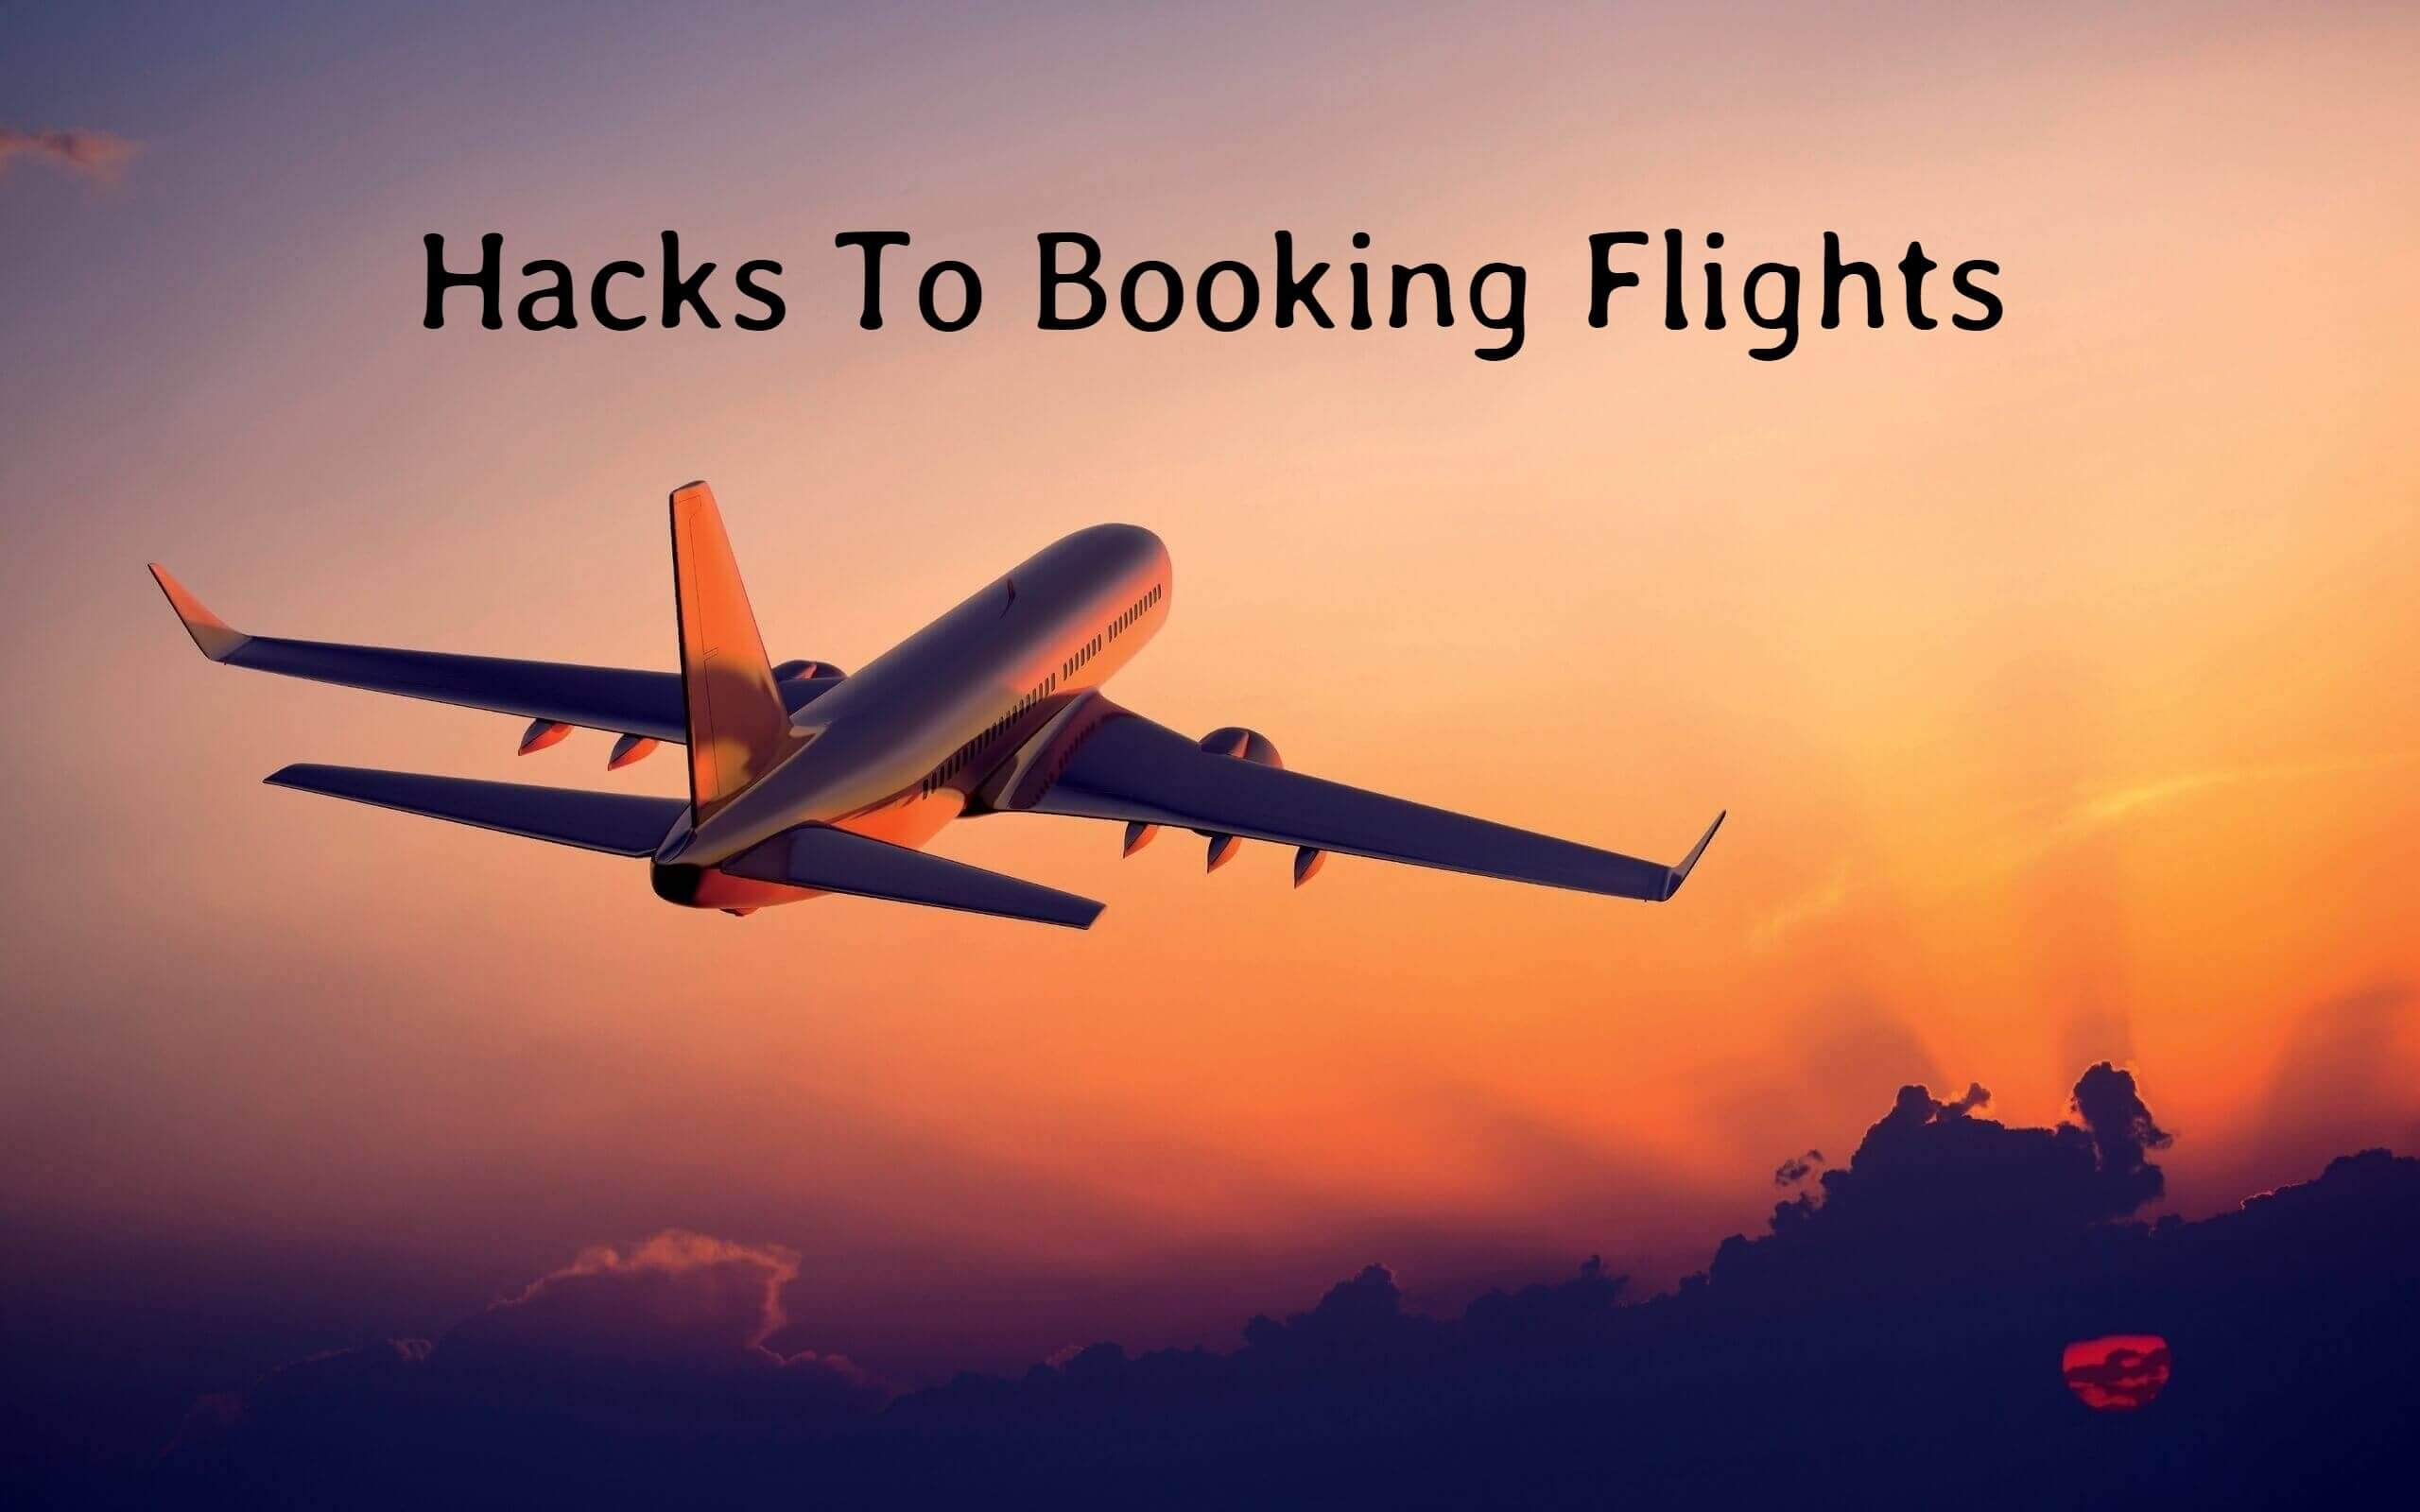 How To Make A Flight Reservation Without Payment